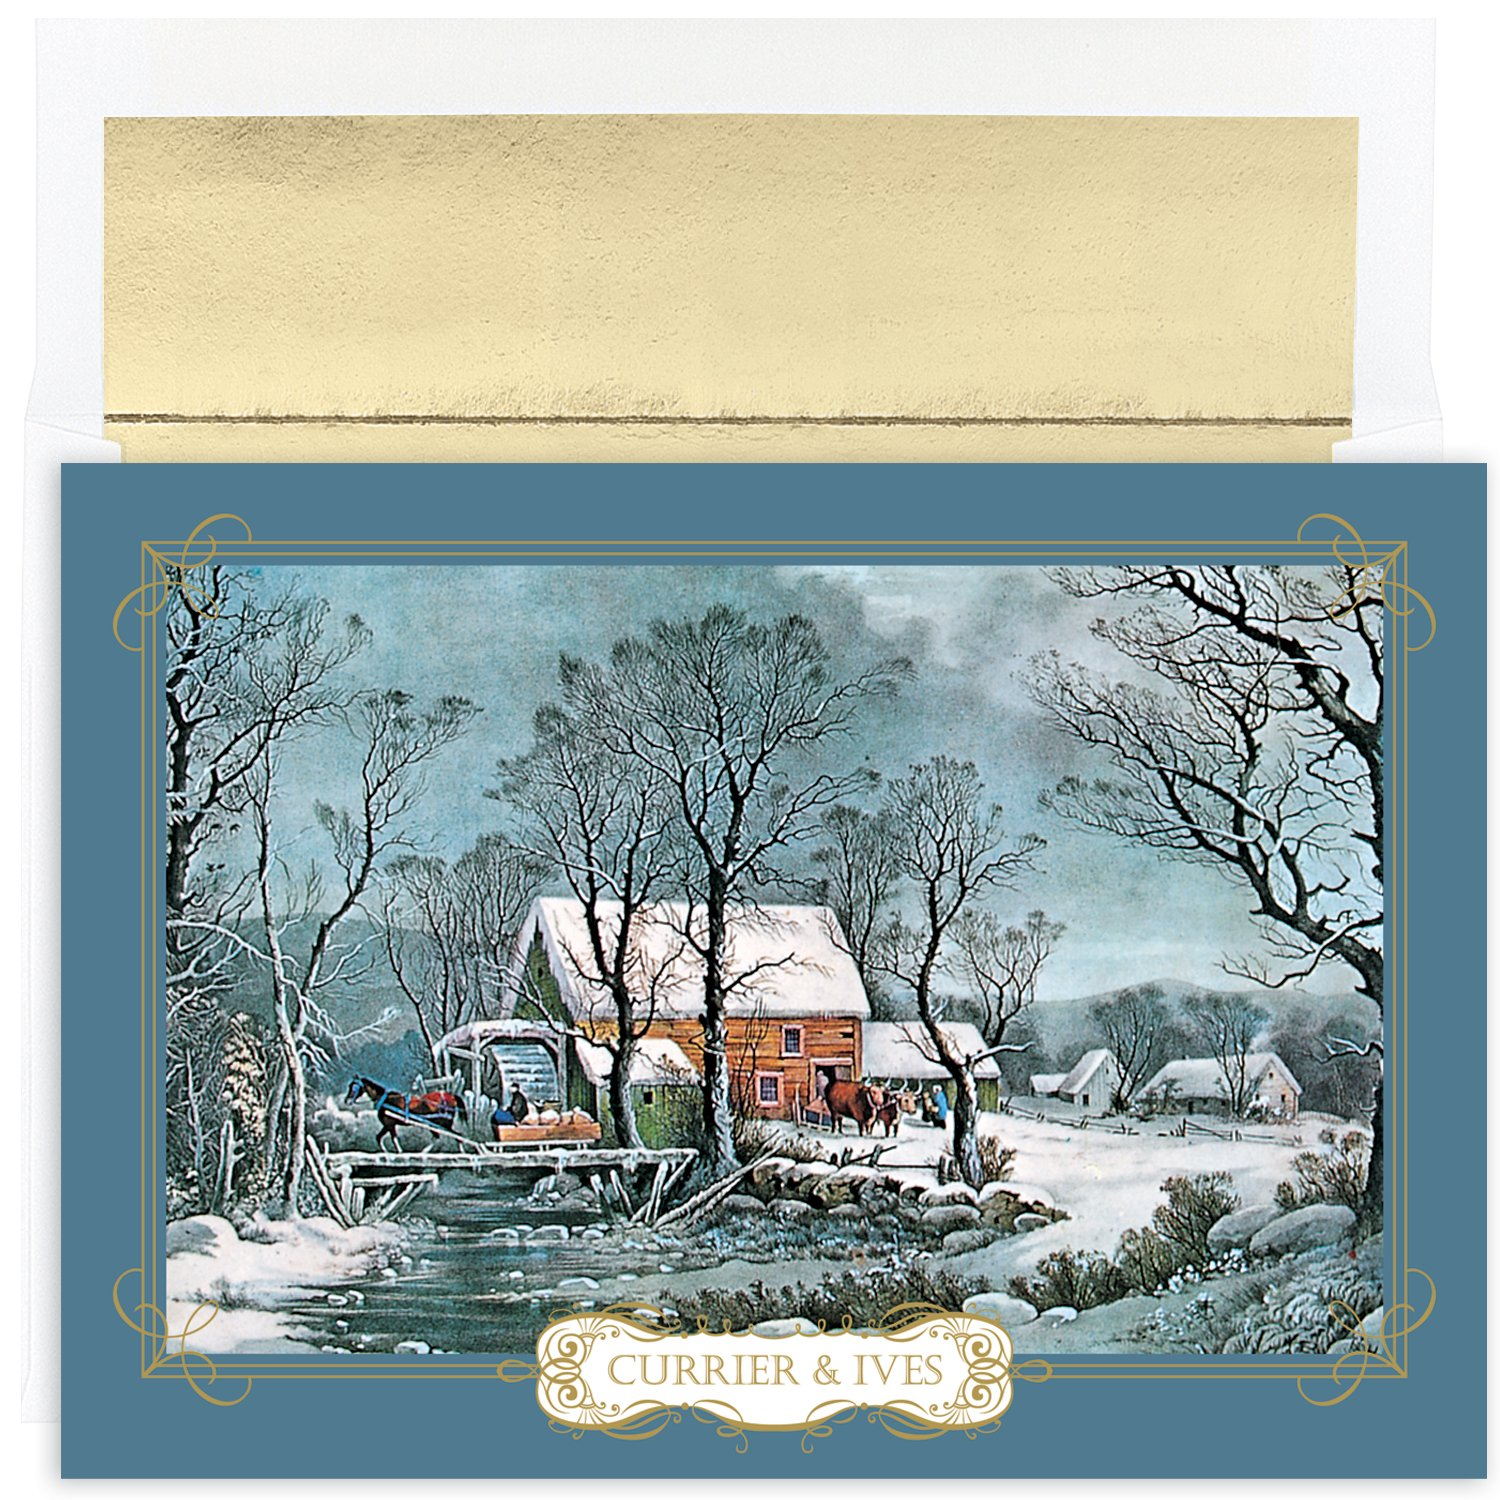 Currier Ives Christmas Cards Business | www.topsimages.com